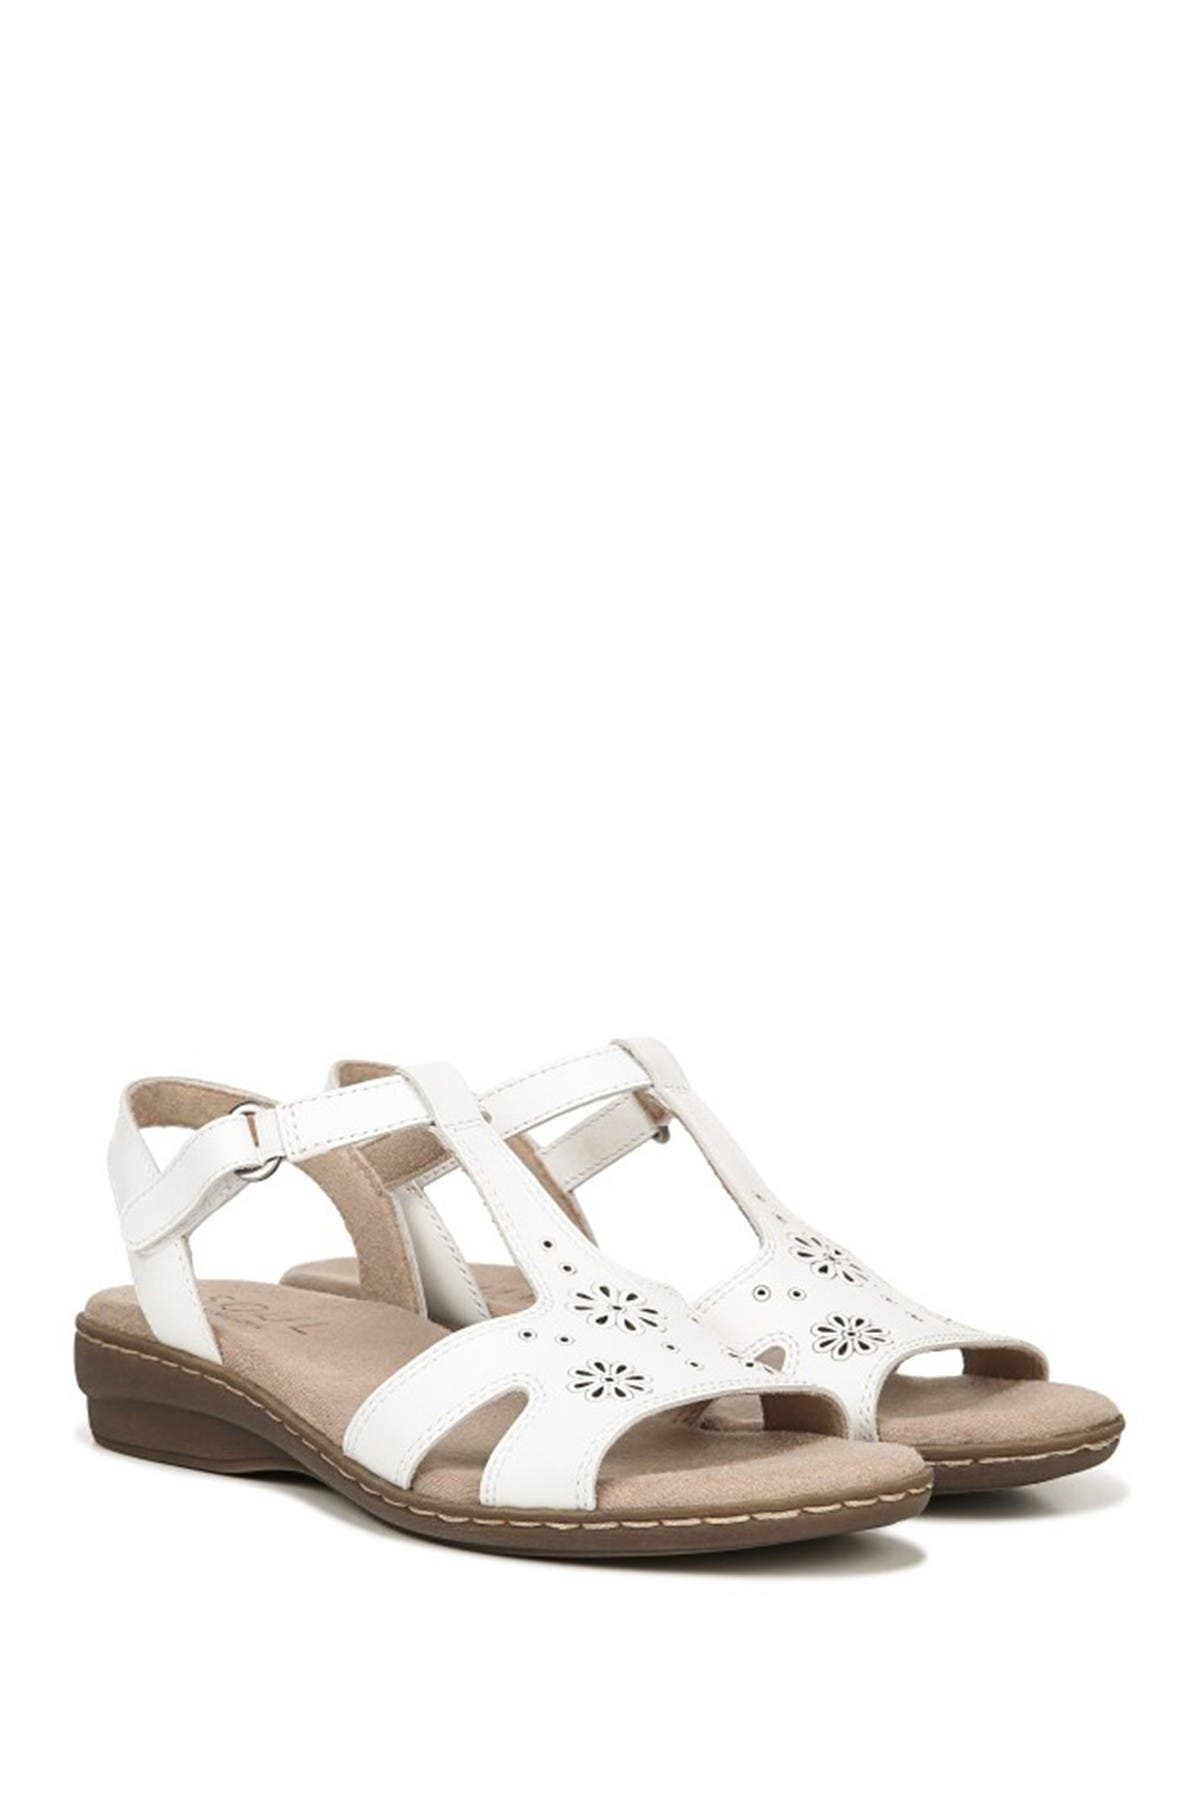 Image of SOUL Naturalizer Brio Leather Sandal - Wide Width Available